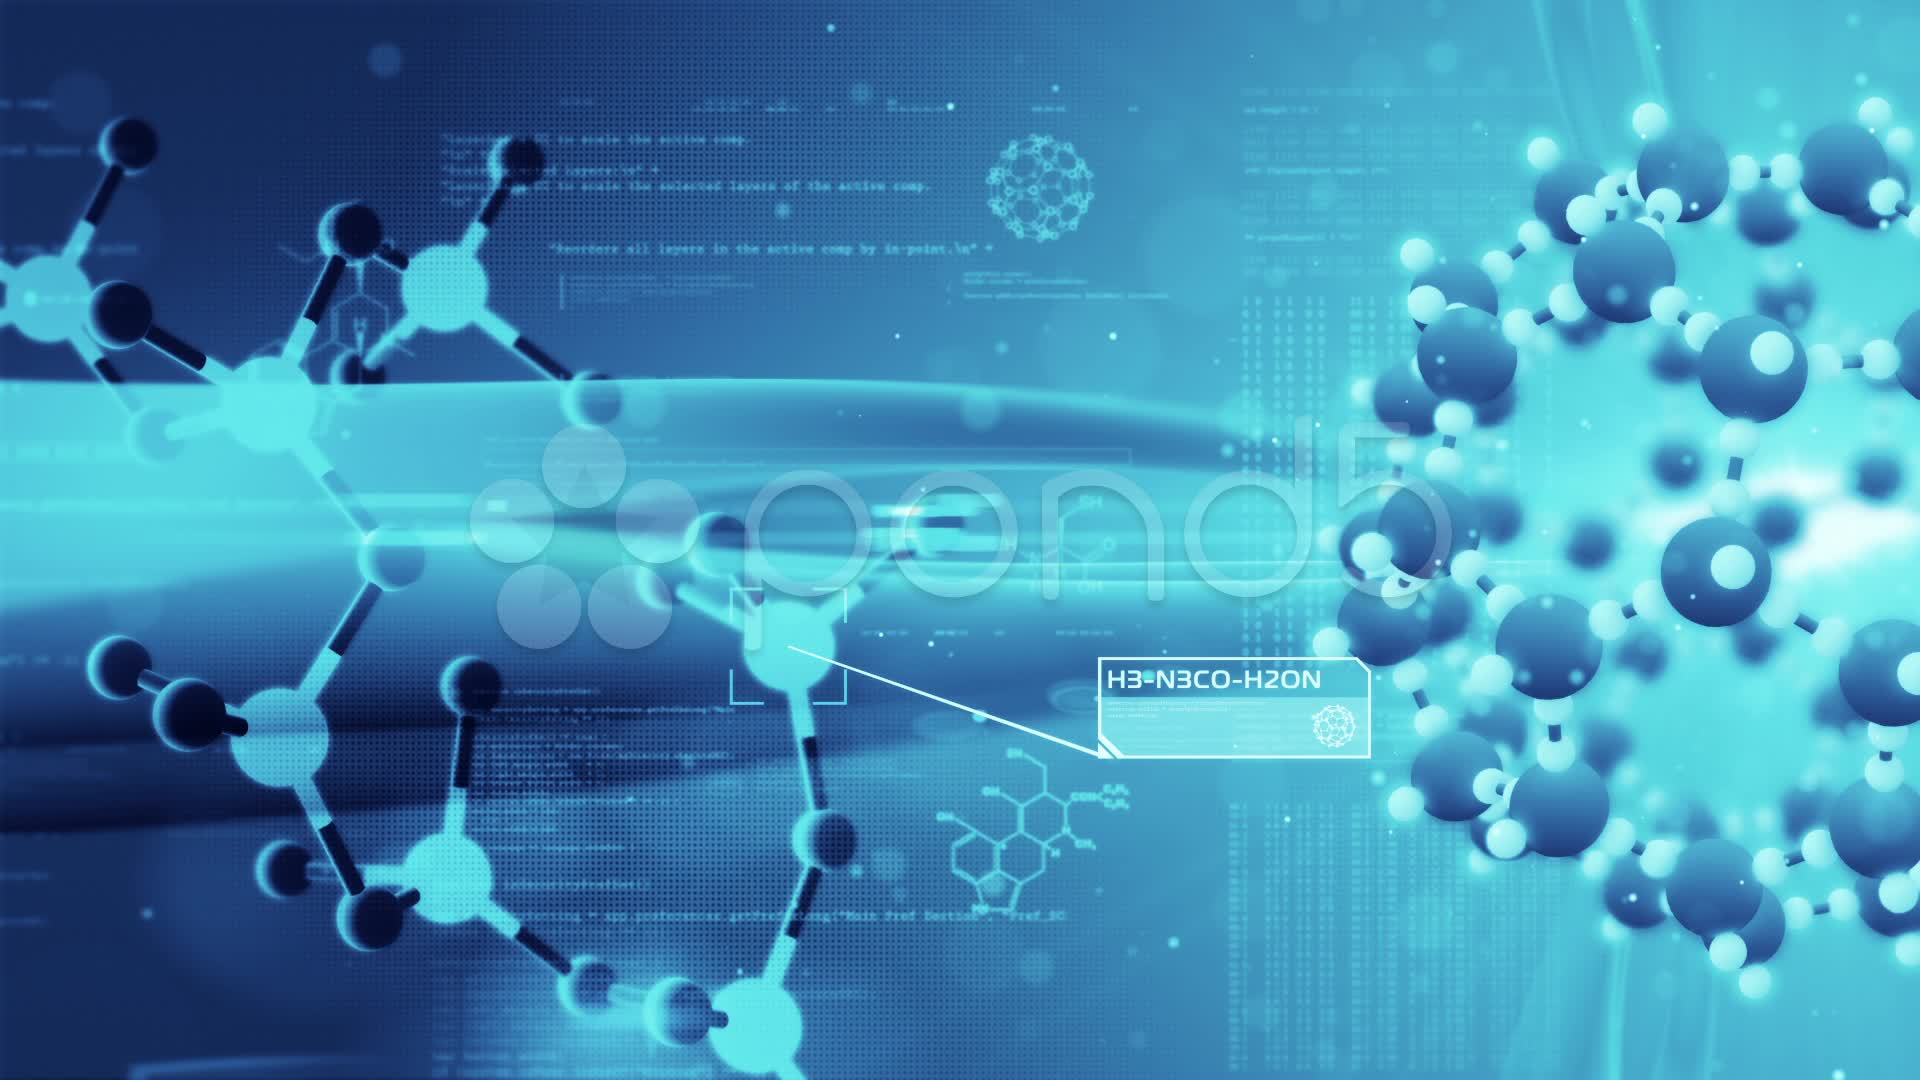 Illustration, Chemical Formula, Underwater, Chemical - Related To Science Background , HD Wallpaper & Backgrounds